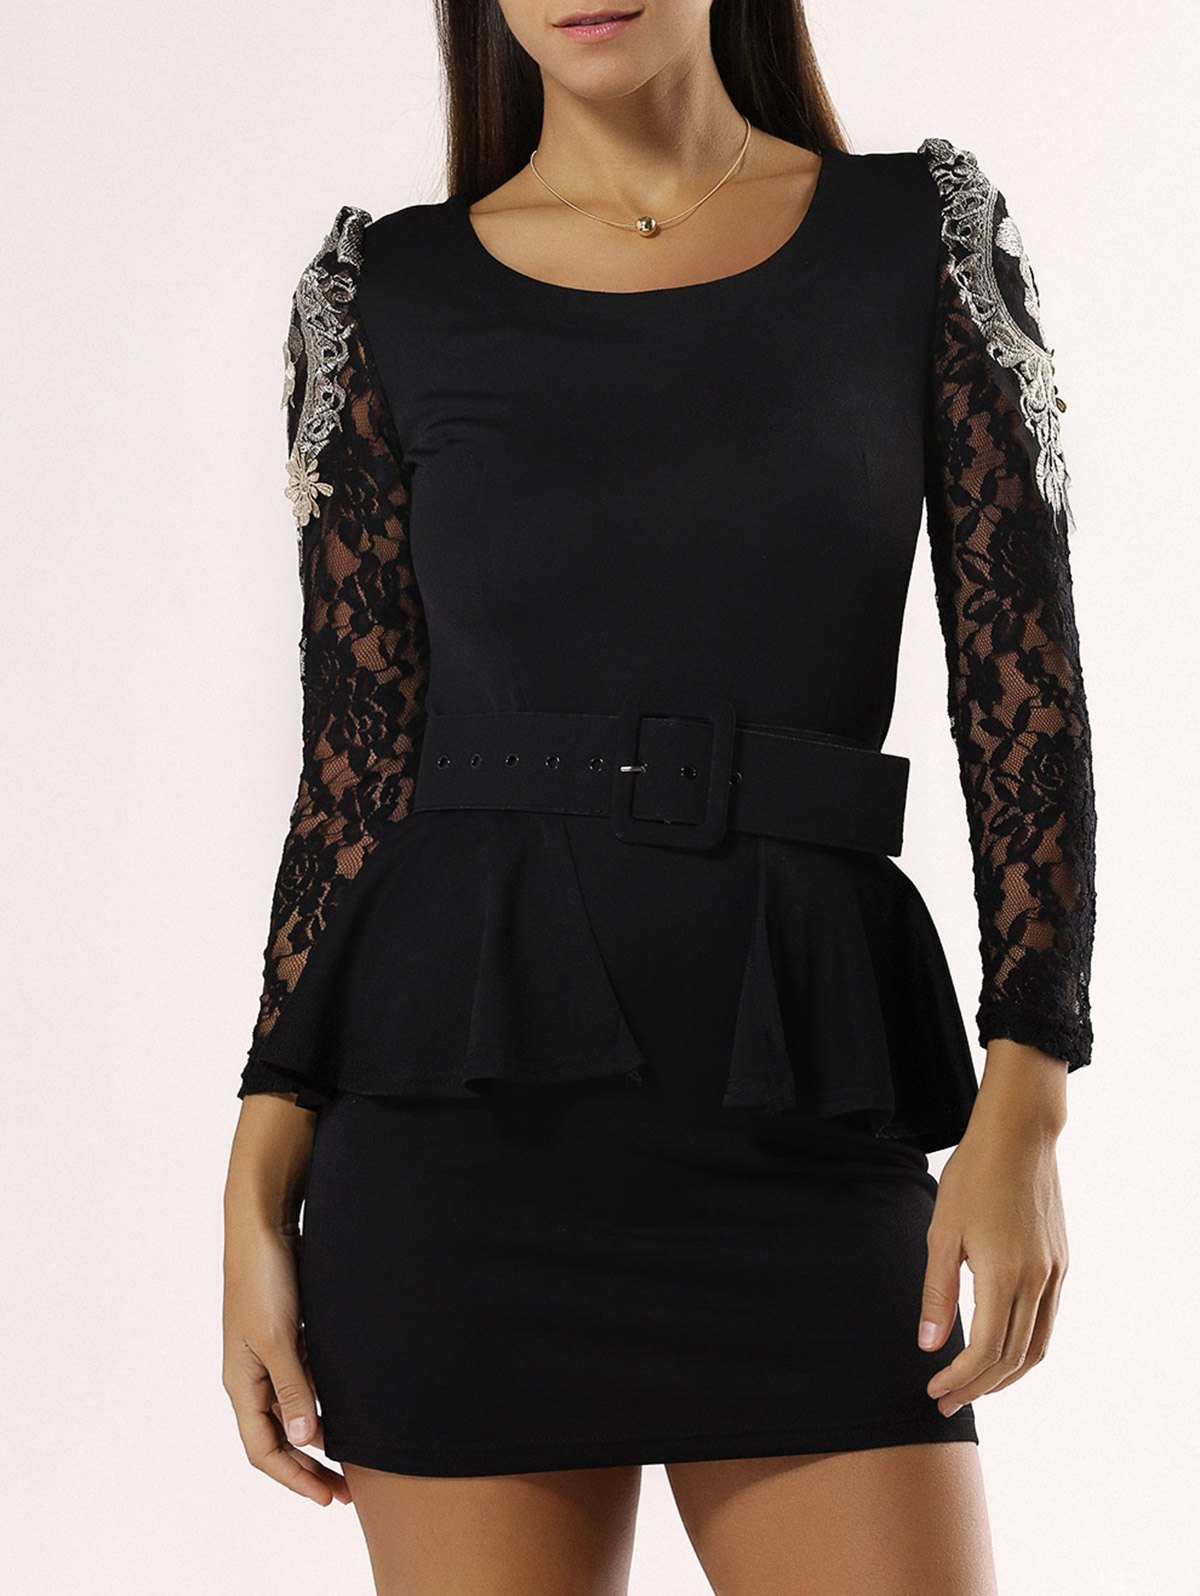 Elegant Flounce Lace Belted Dress For Women - BLACK XL